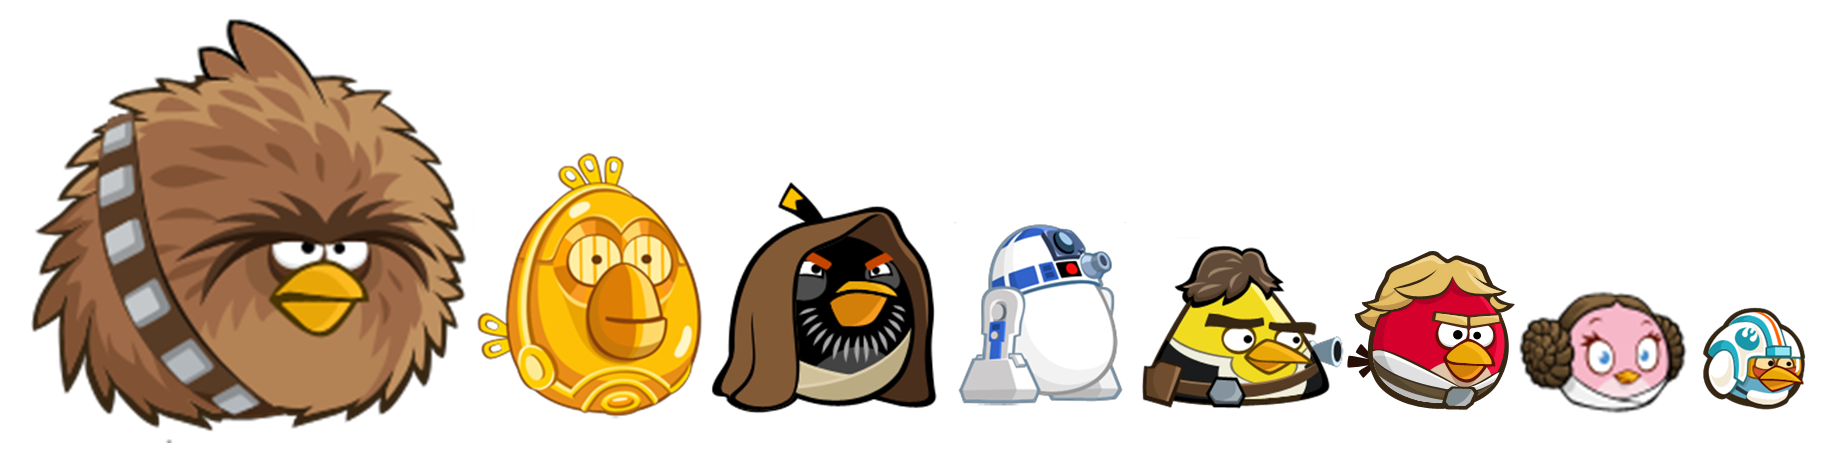 Star Wars clipart angry birds #14